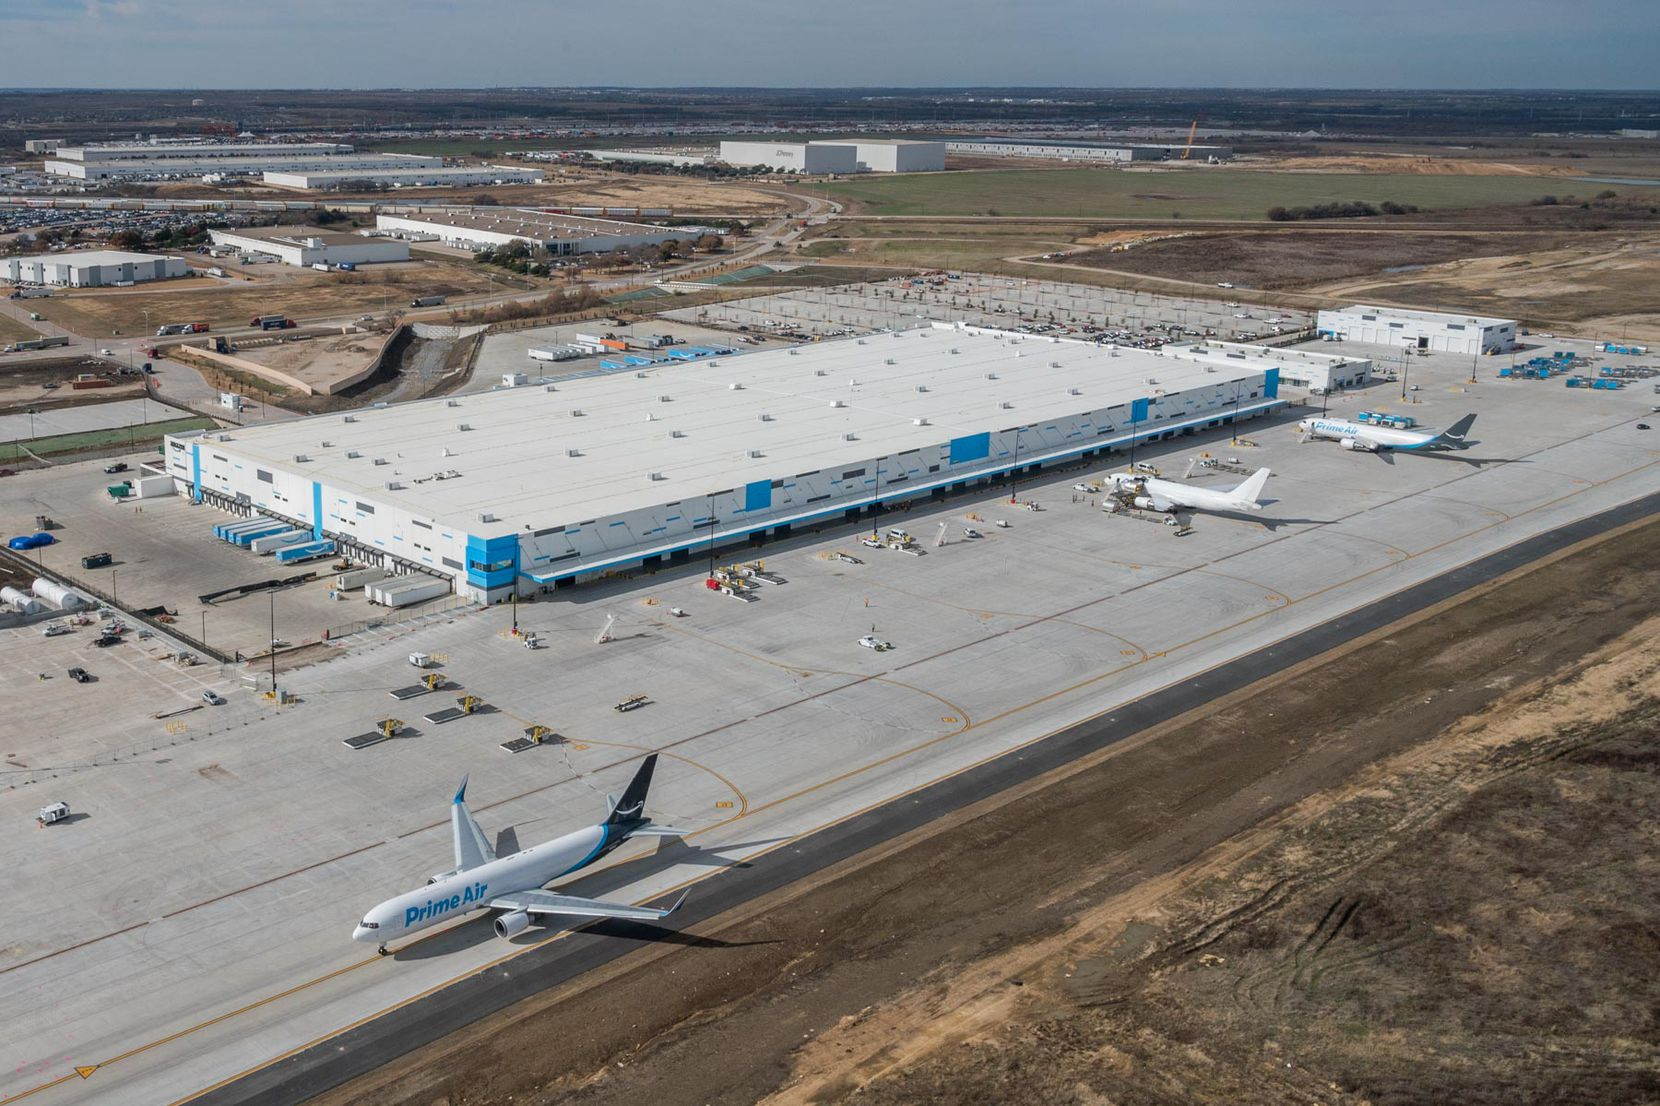 Amazon's new air shipping hub is one of the new distribution projects in AllianceTexas.